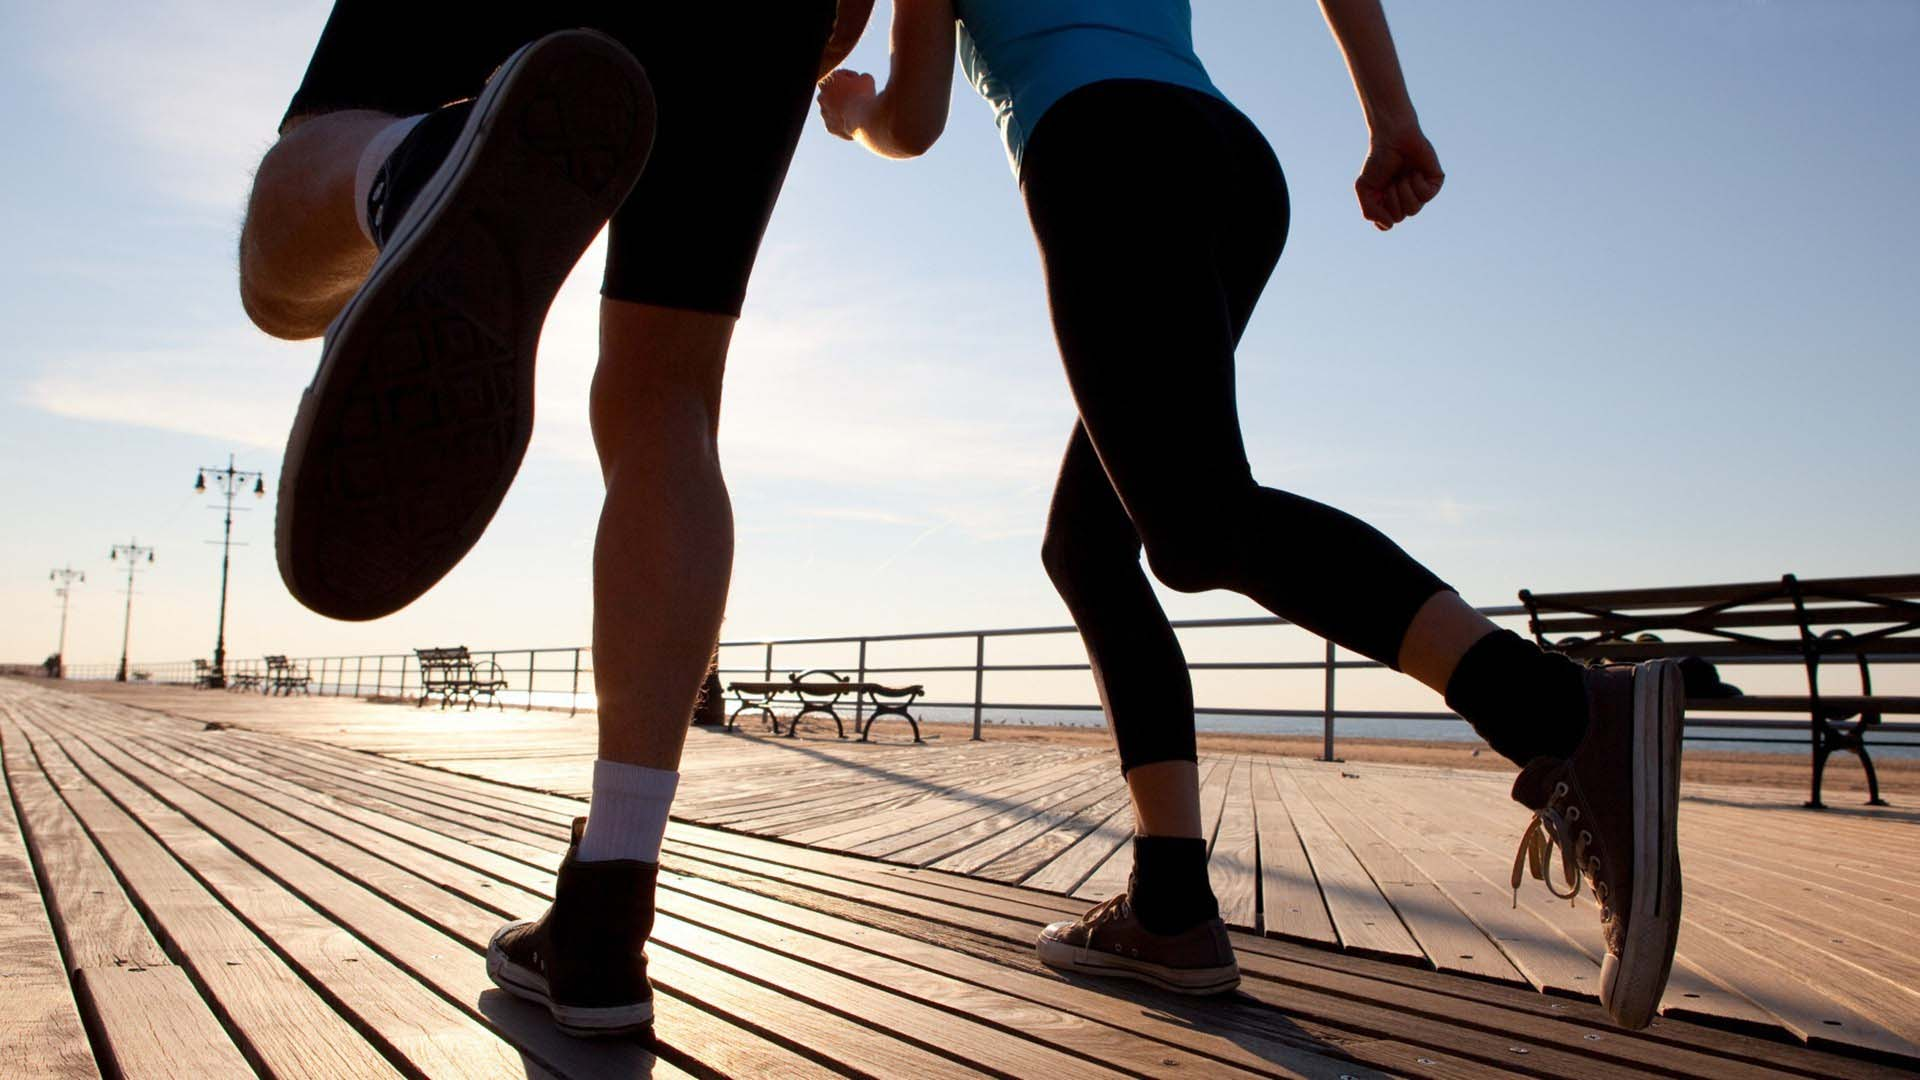 Jogging Exercise Wallpaper Daily Devotion